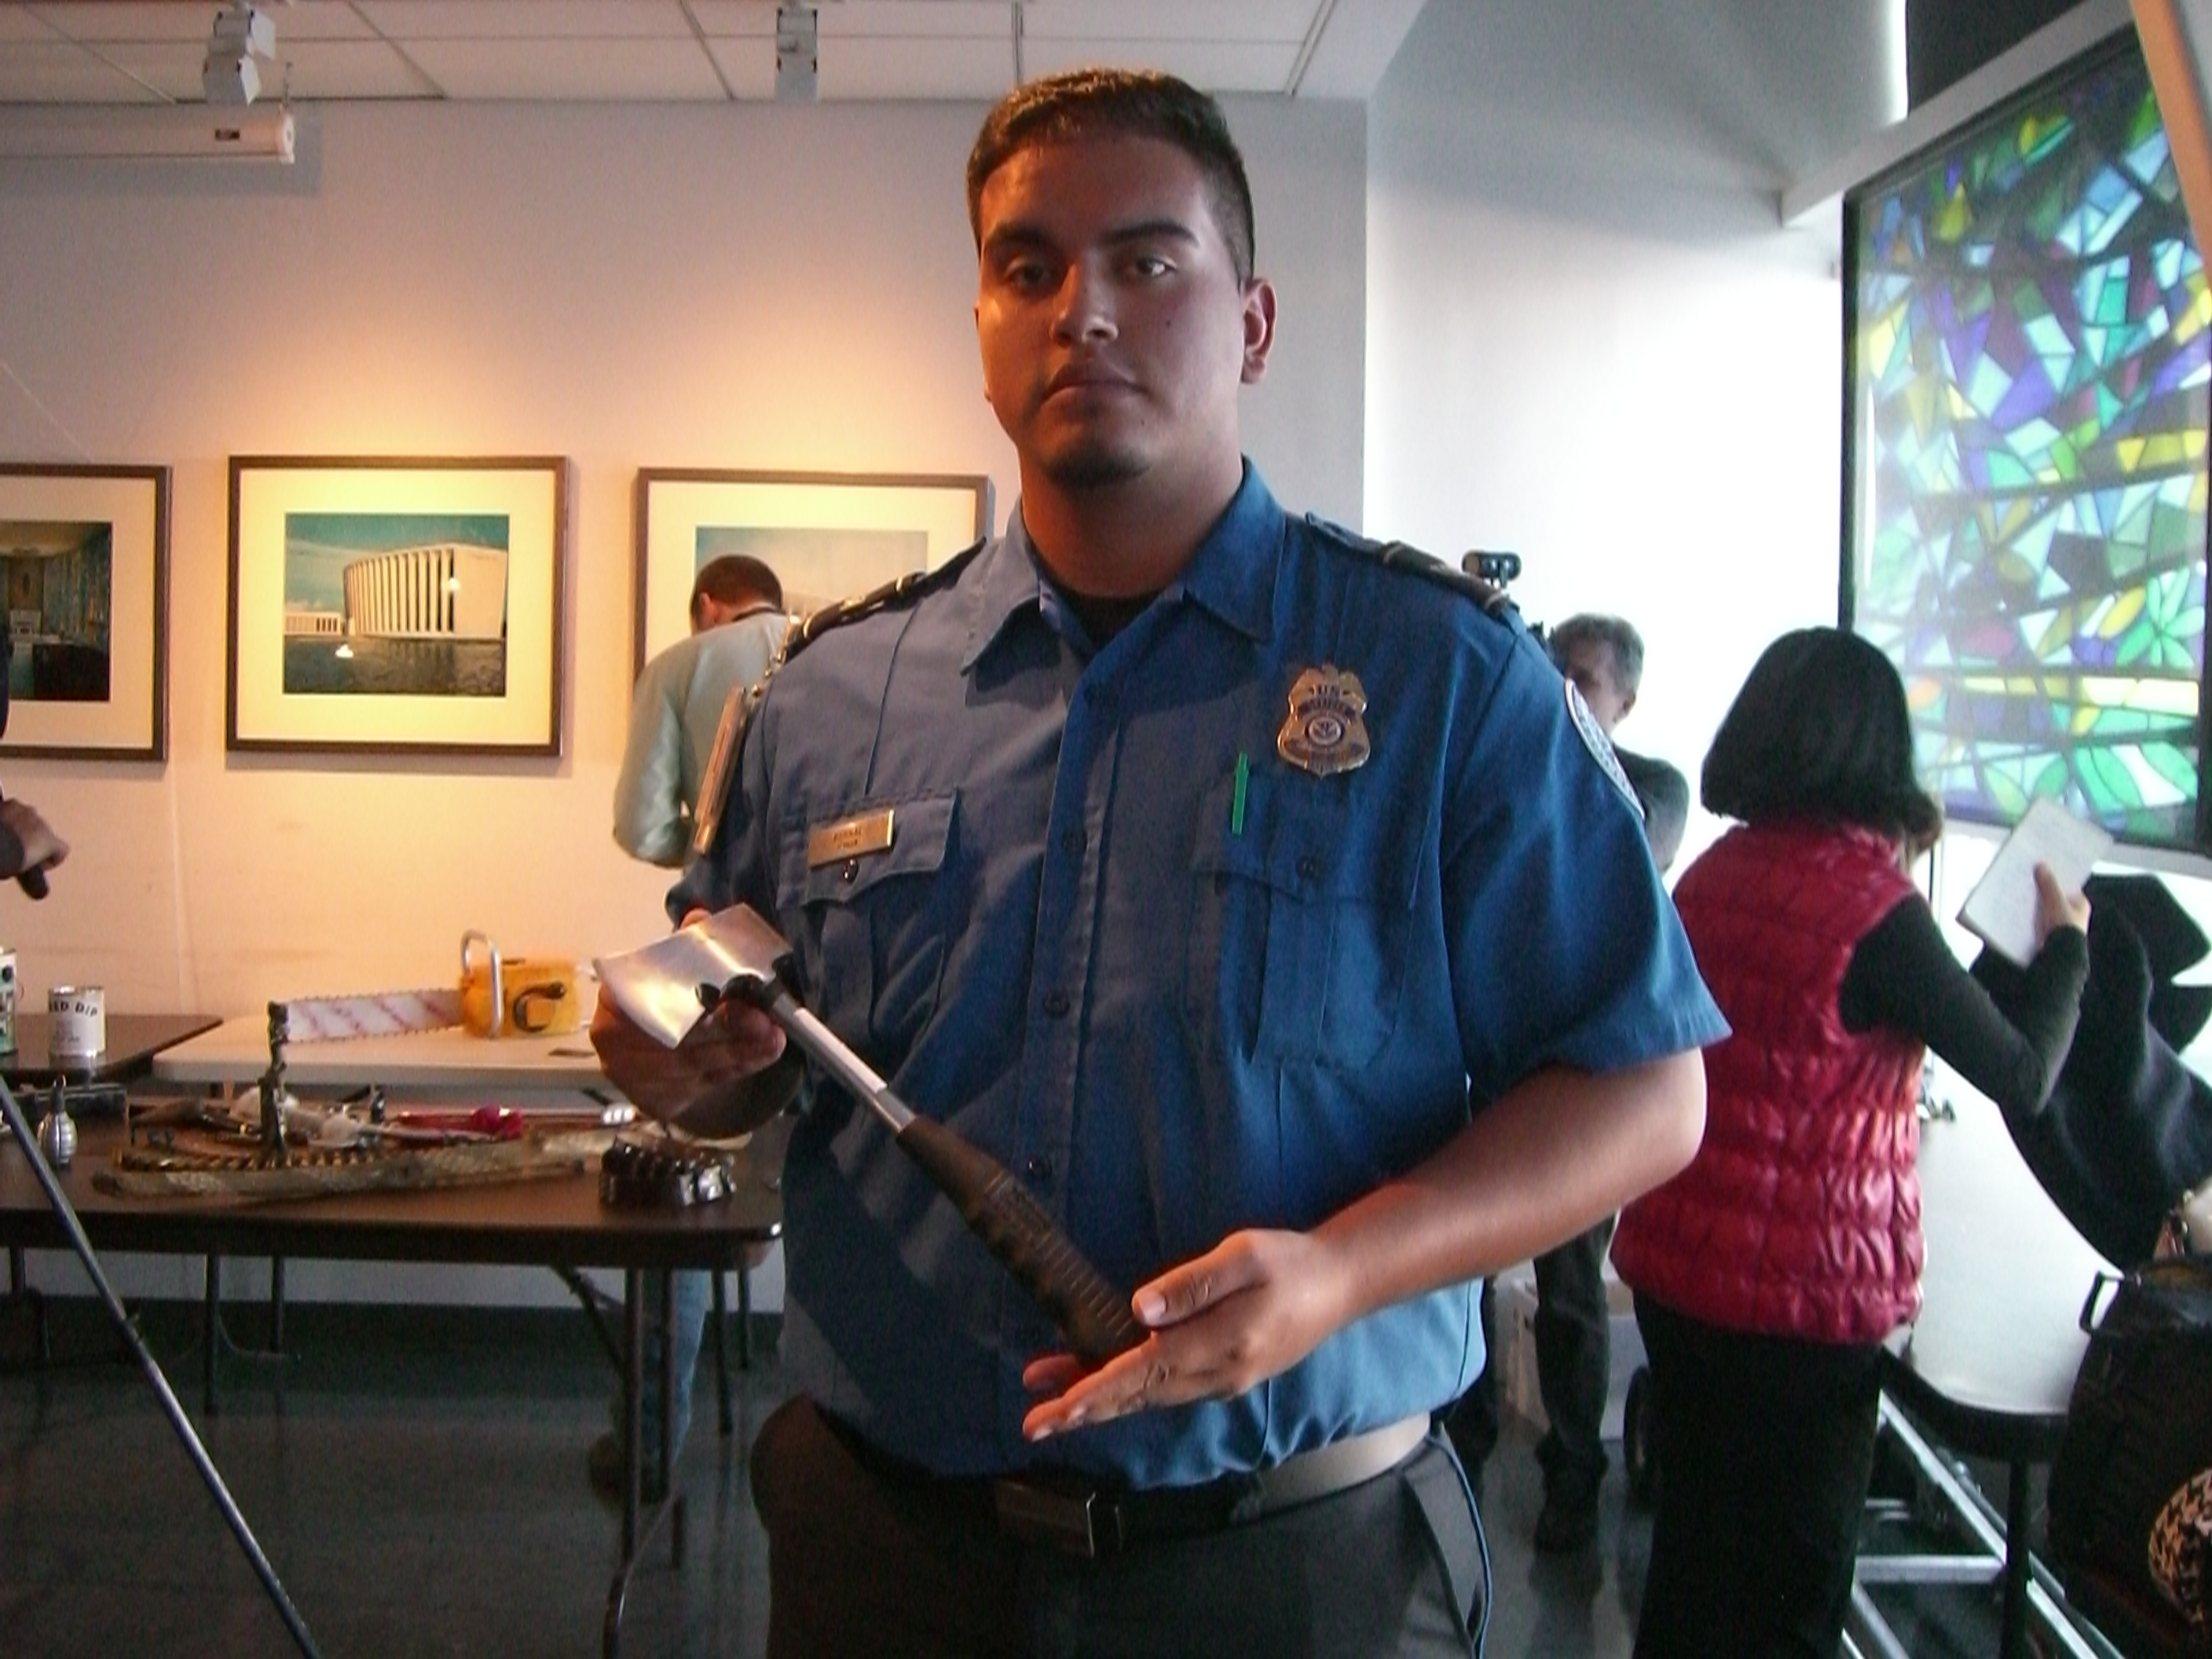 transportation security officer camilo bernal displays a hatchet that was surrendered by a passenger at a